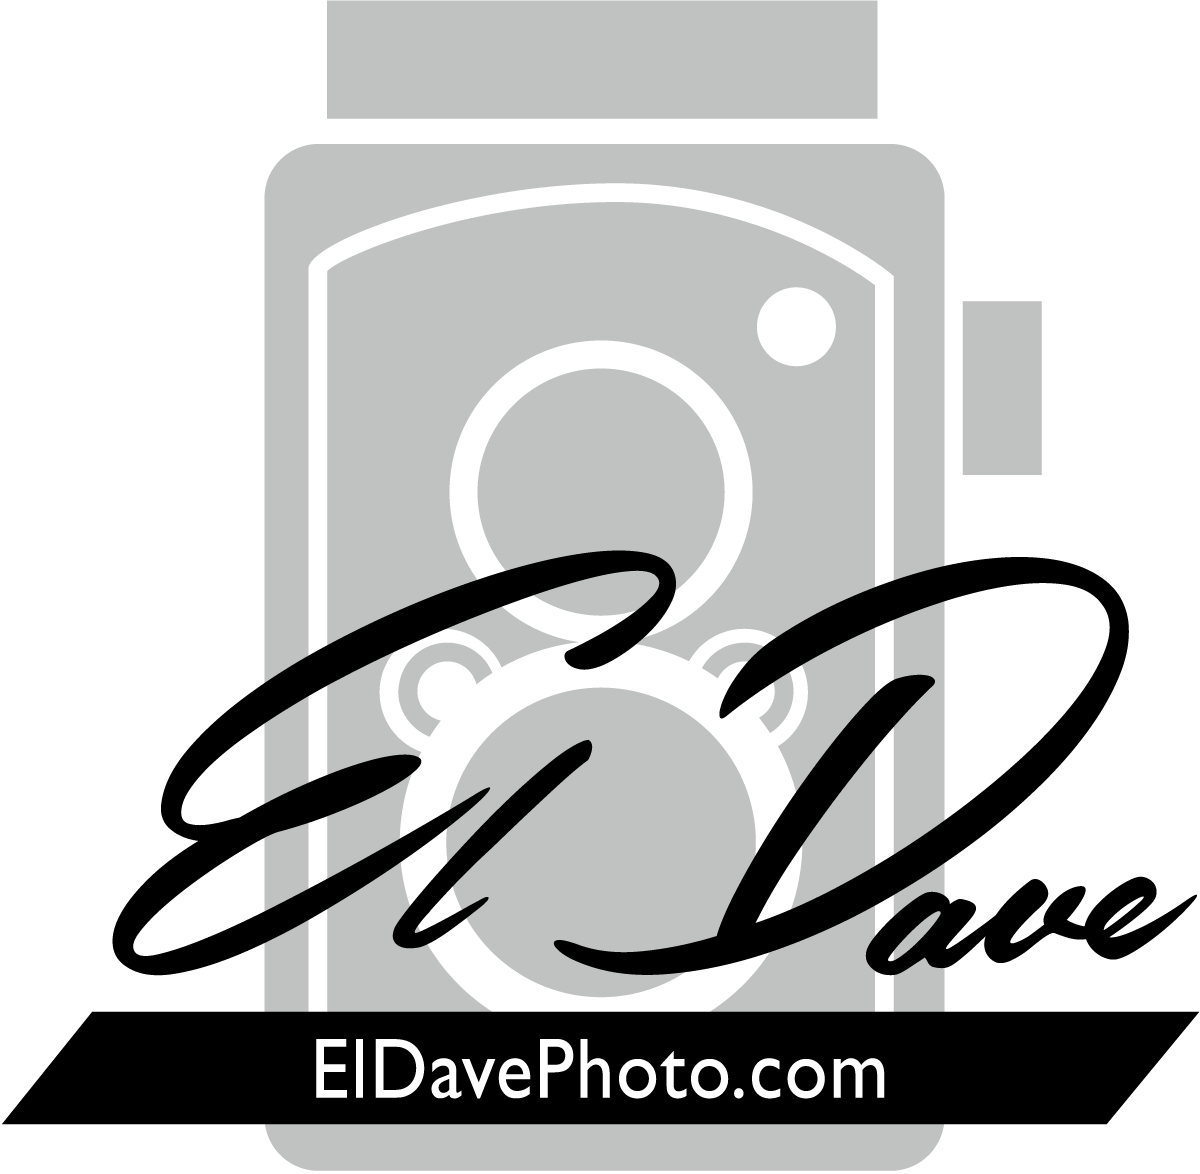 El Dave Photography